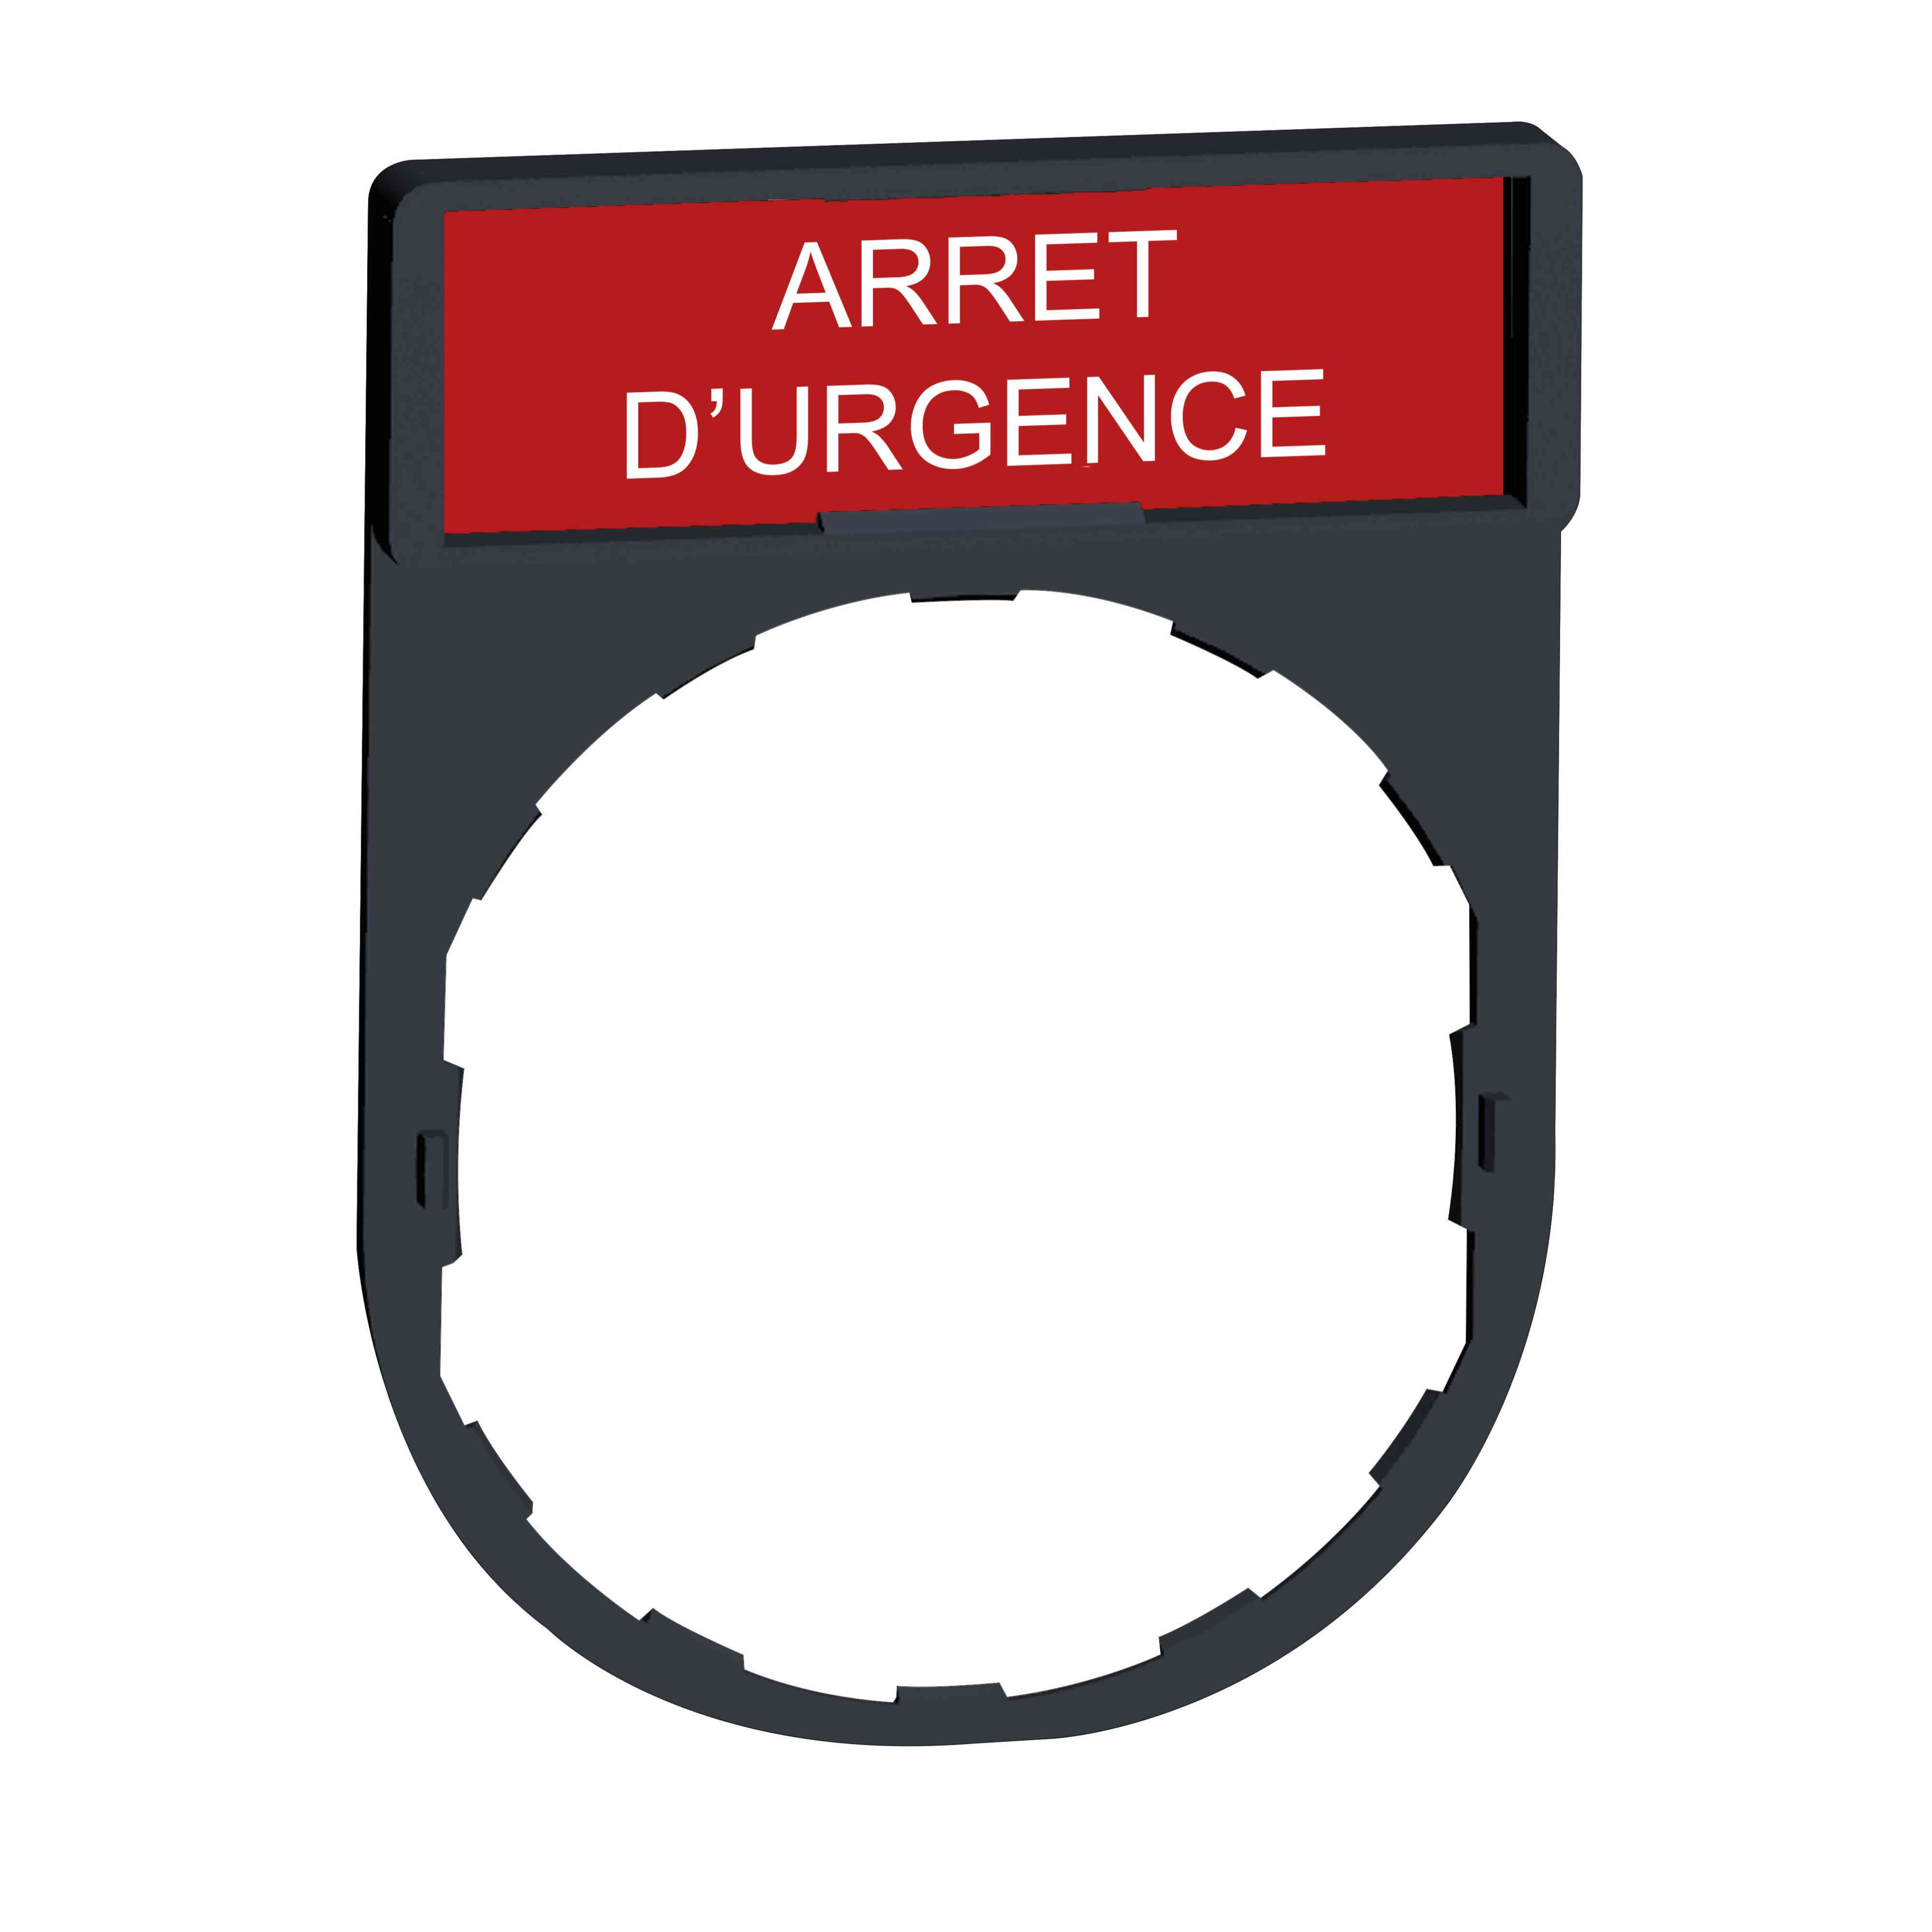 Nosilec legende 30 x 40 mm z legendo 8 x 27 mm z oznako ARRET D'URGENCE